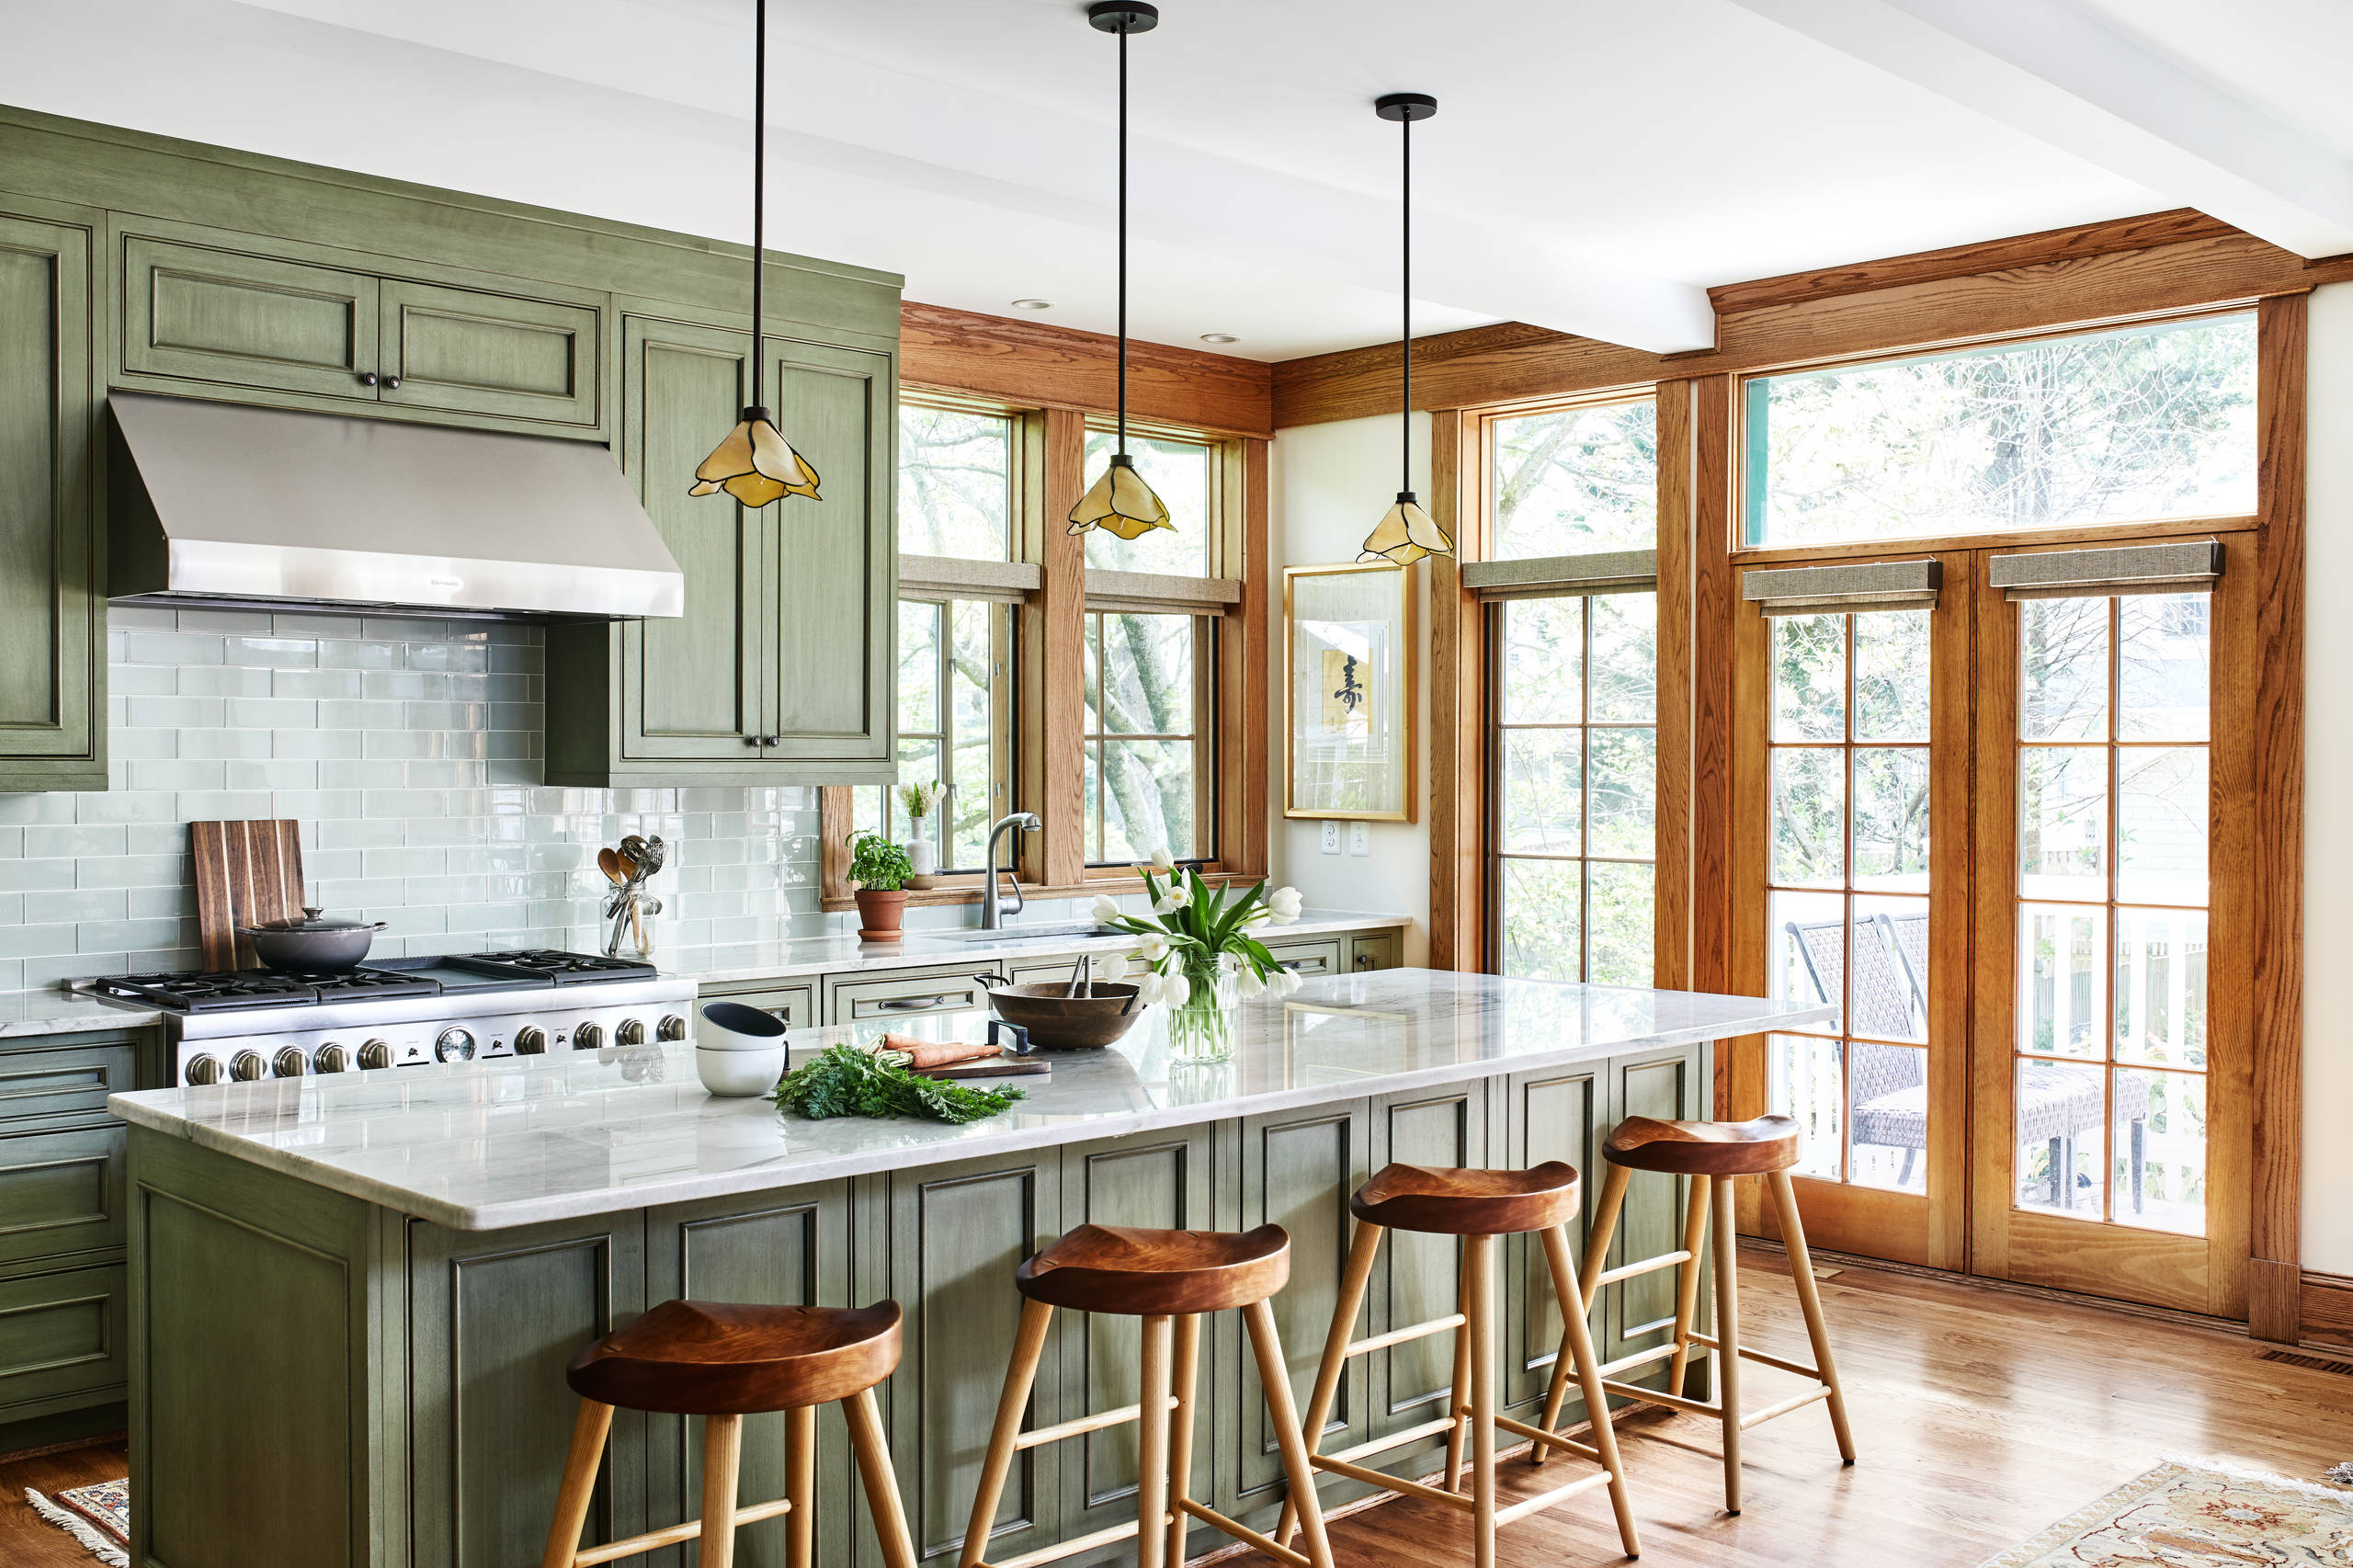 75 Beautiful Craftsman Kitchen Pictures Ideas January 2021 Houzz